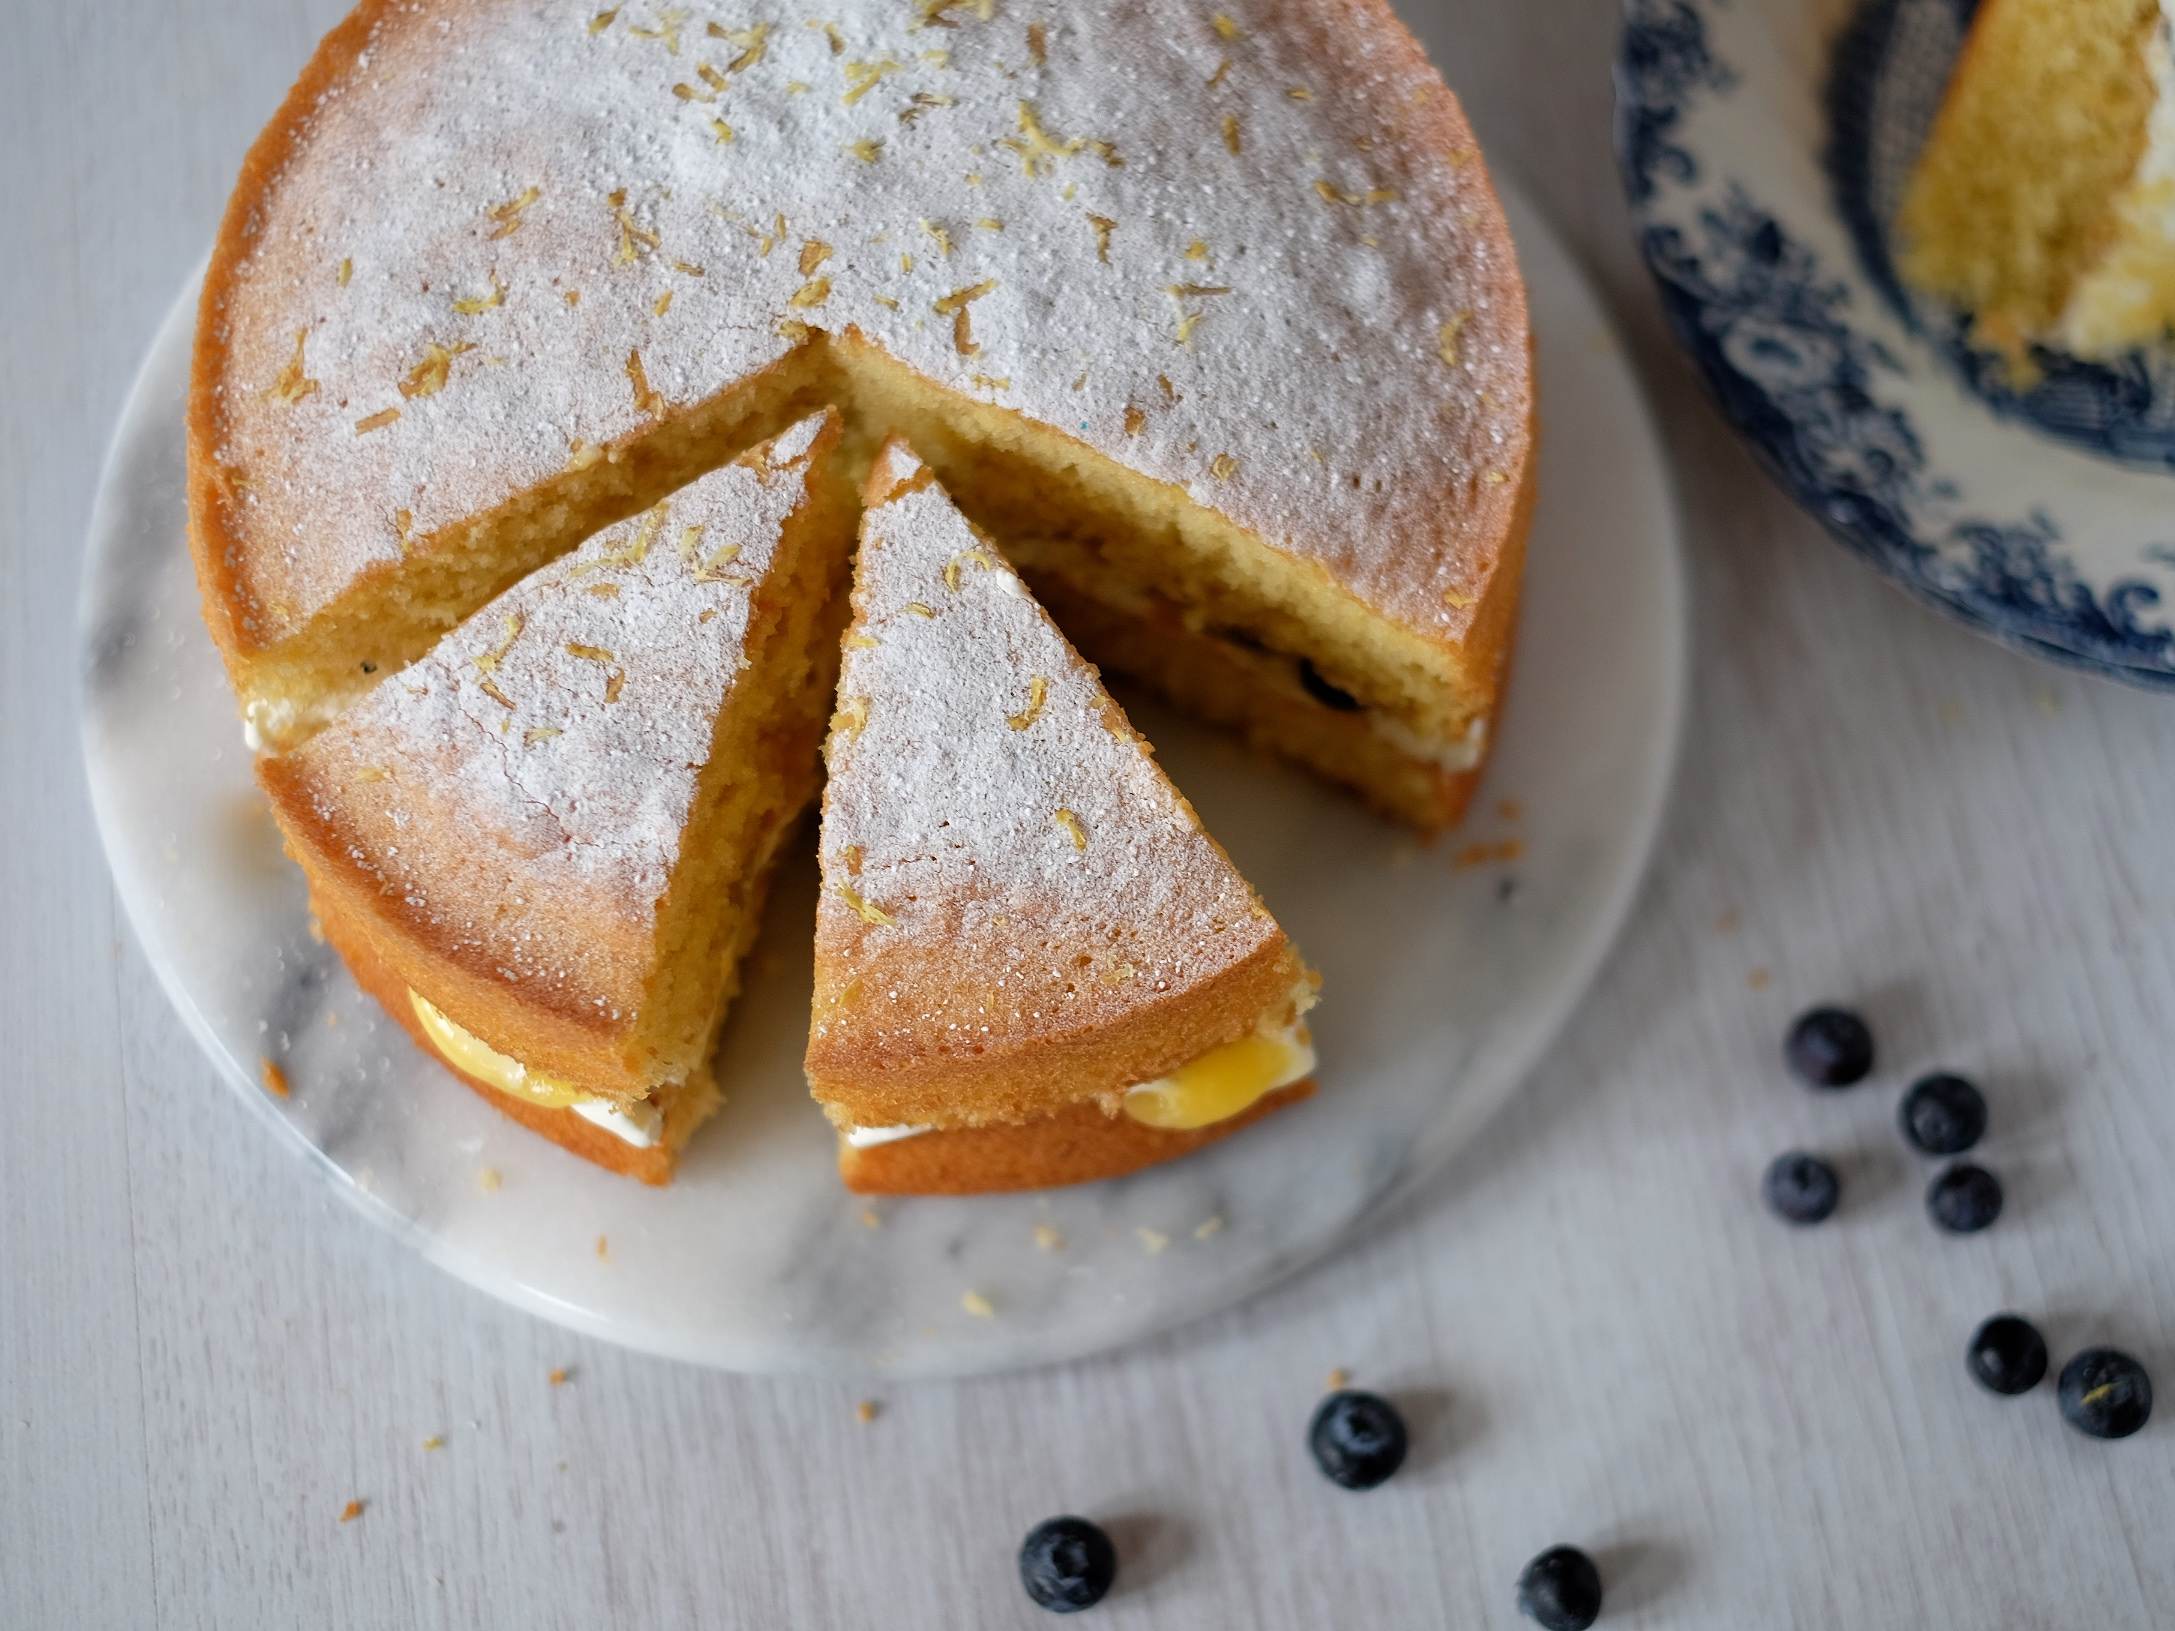 Lemon and Blueberry Victoria Sponge 1.jpg